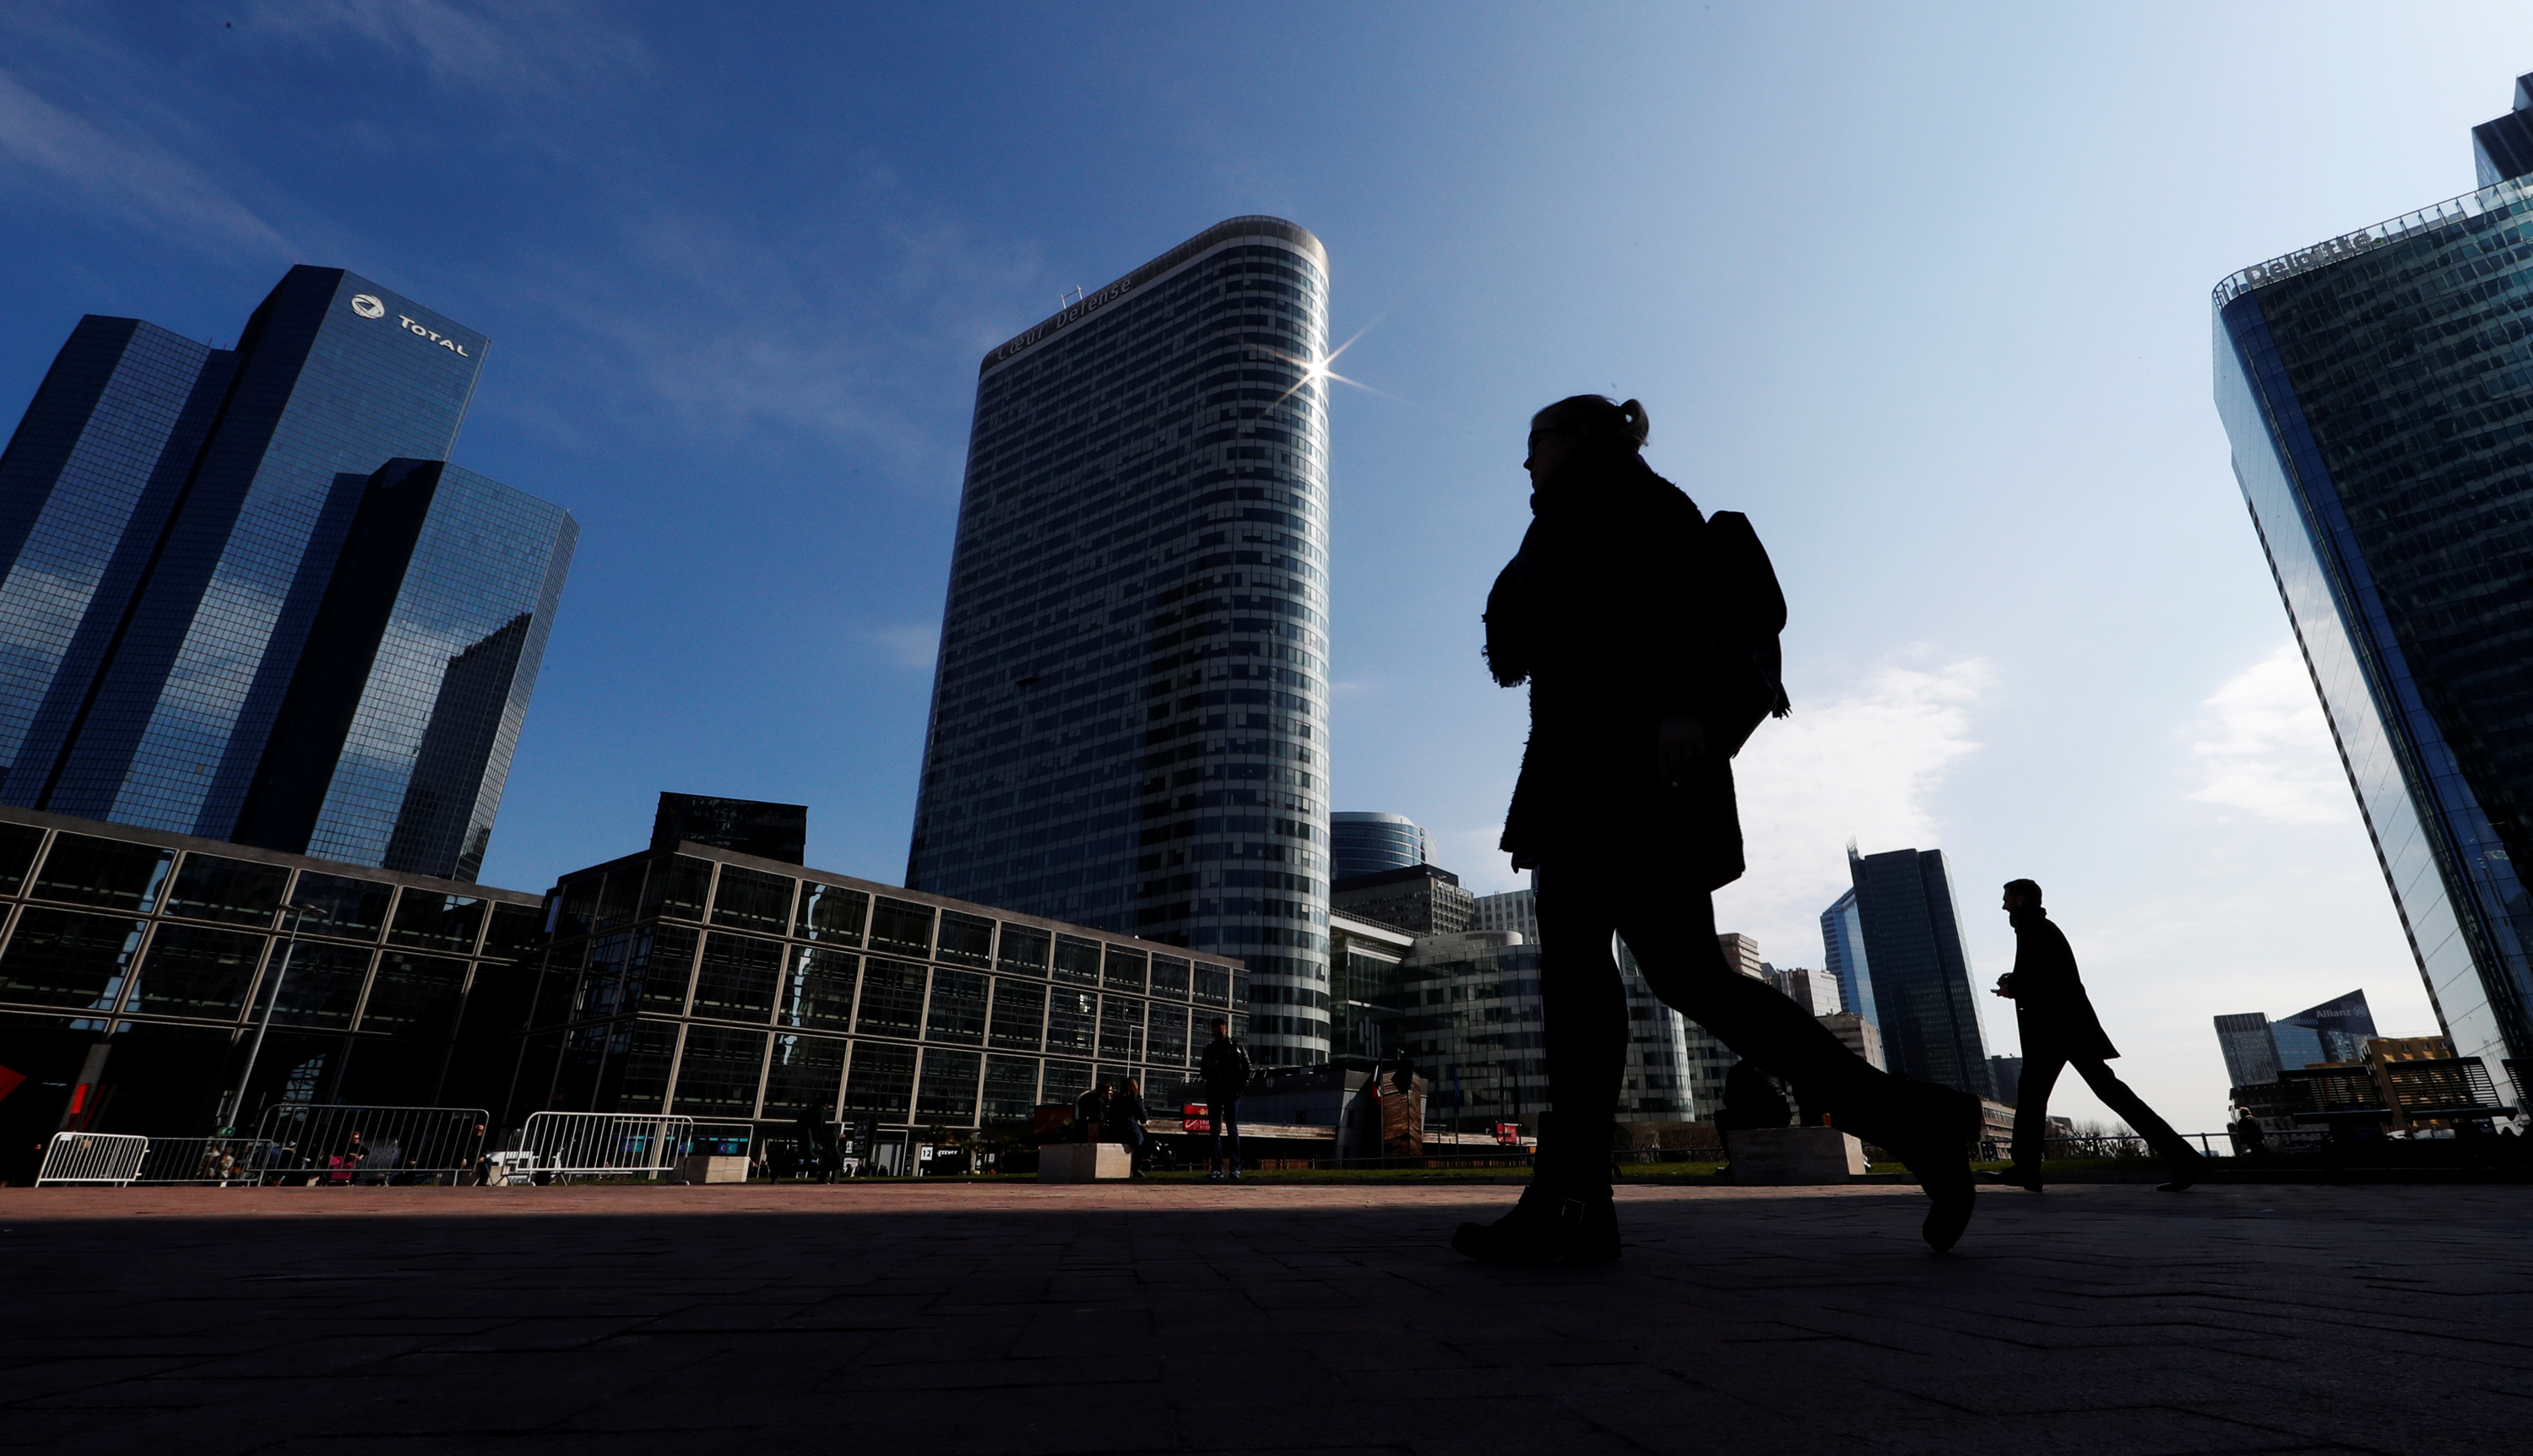 People walk on the esplanade of La Defense in the financial and business district of La Defense, west of Paris, France March 26, 2018. REUTERS/Gonzalo Fuentes - RC1D39CFF000